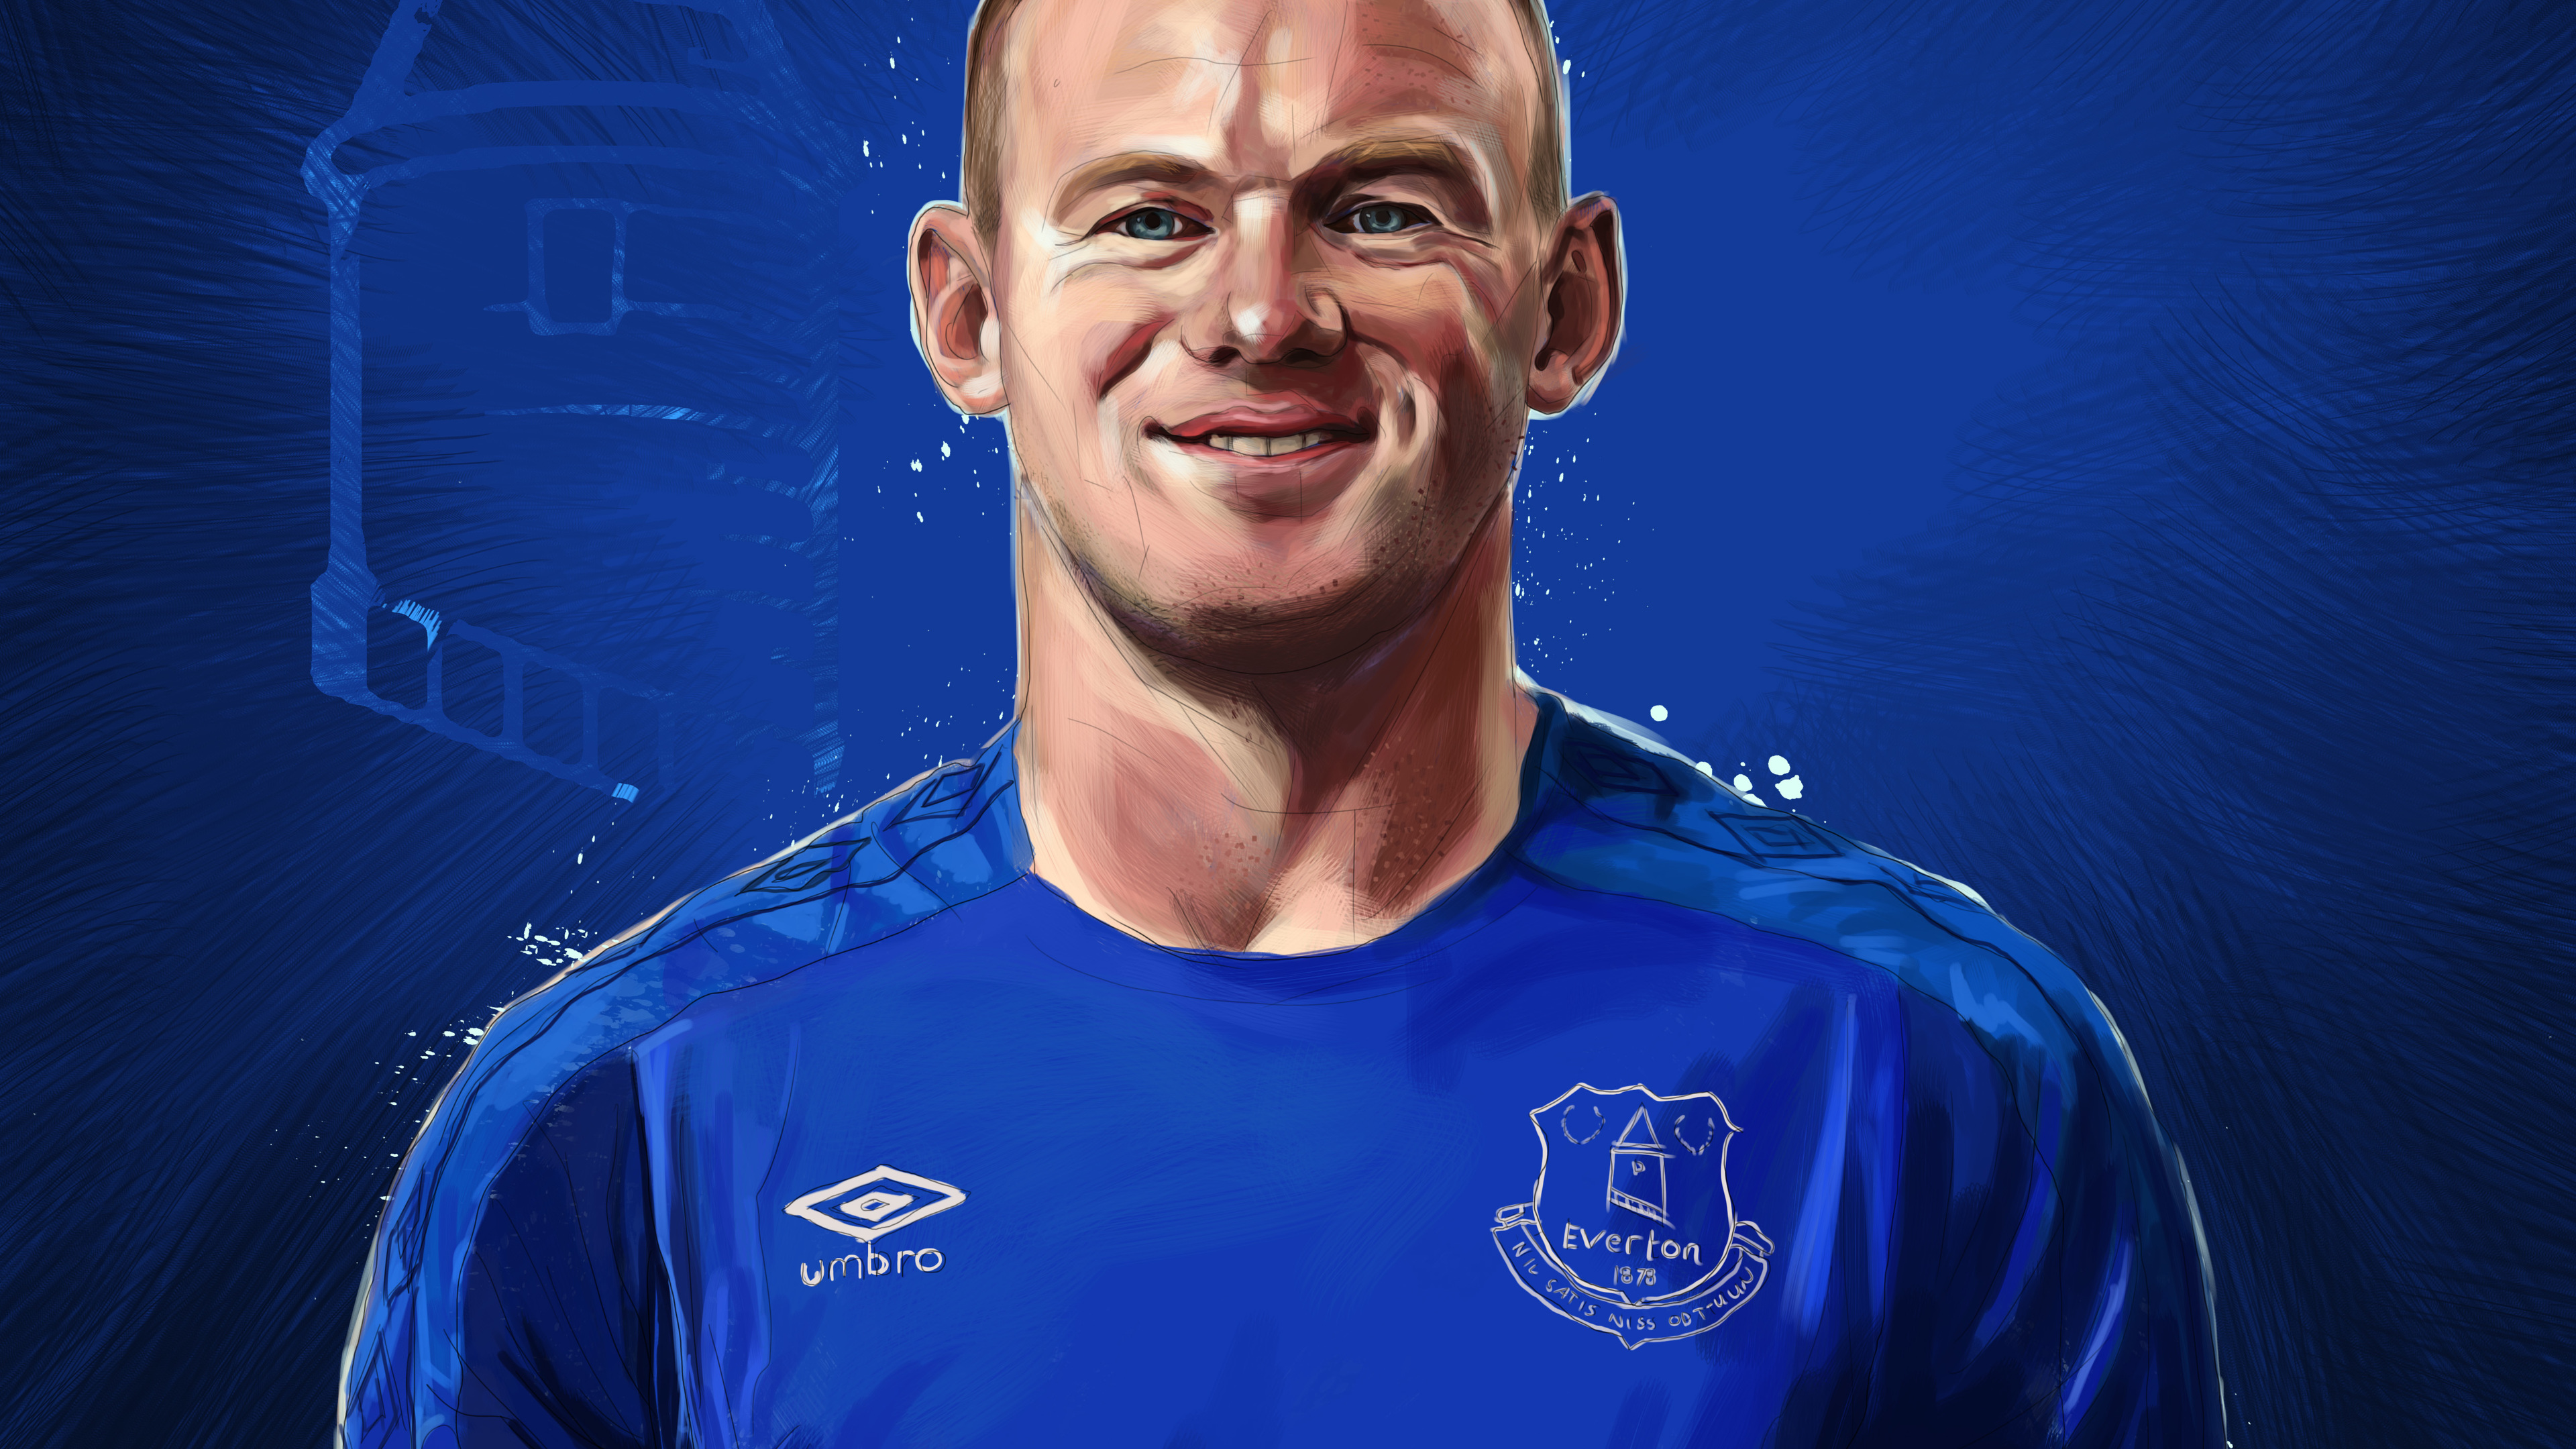 wayne rooney 1547938885 - Wayne Rooney - wayne rooney wallpapers, sports wallpapers, male celebrities wallpapers, hd-wallpapers, football wallpapers, boys wallpapers, 4k-wallpapers